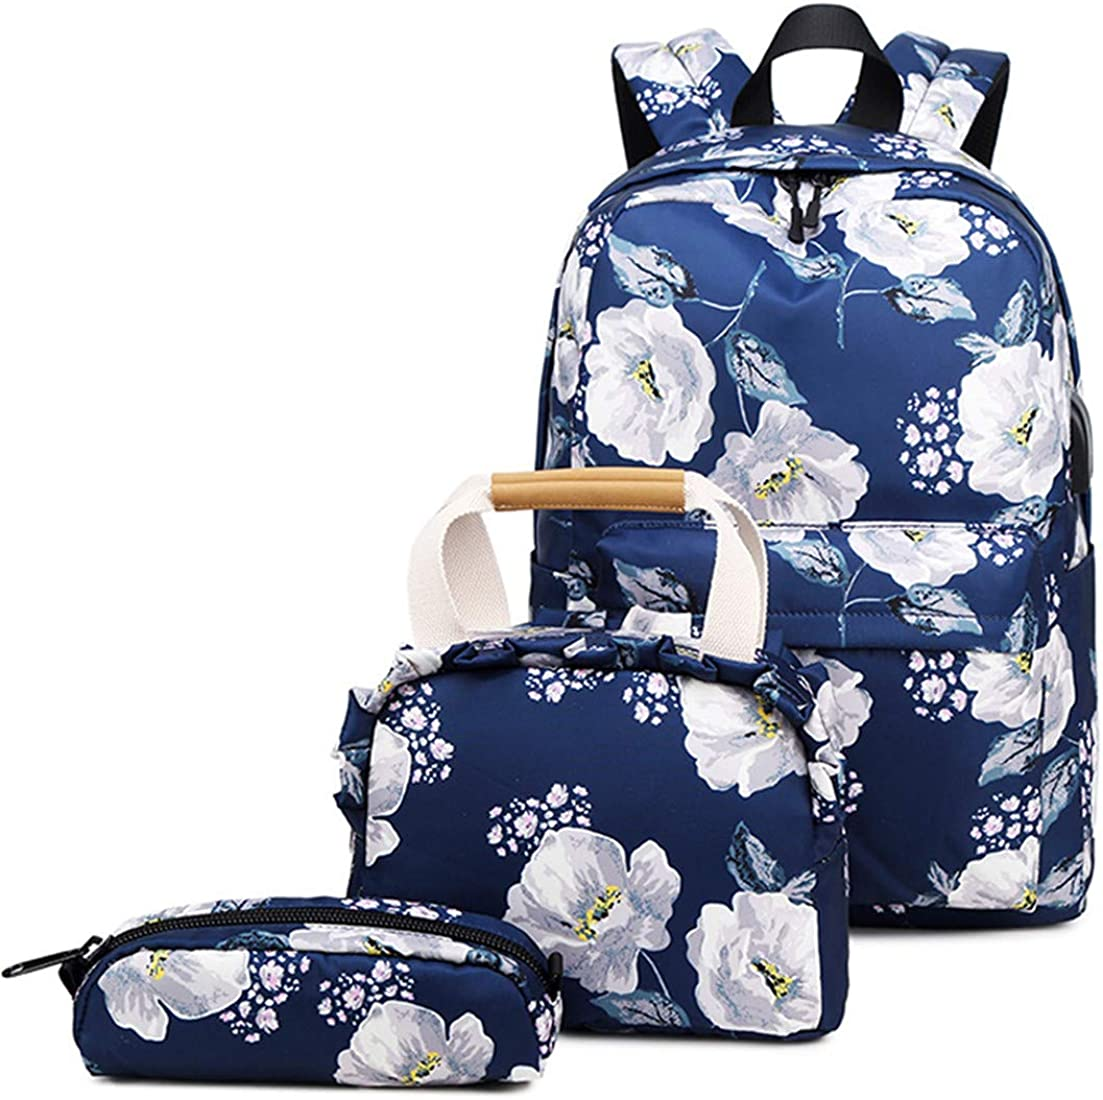 Backpack Set Flower School Bookbag Laptop Bag Daypack Lunch Tote Bag Clutch Purse Pencil Case USB 3 in 1